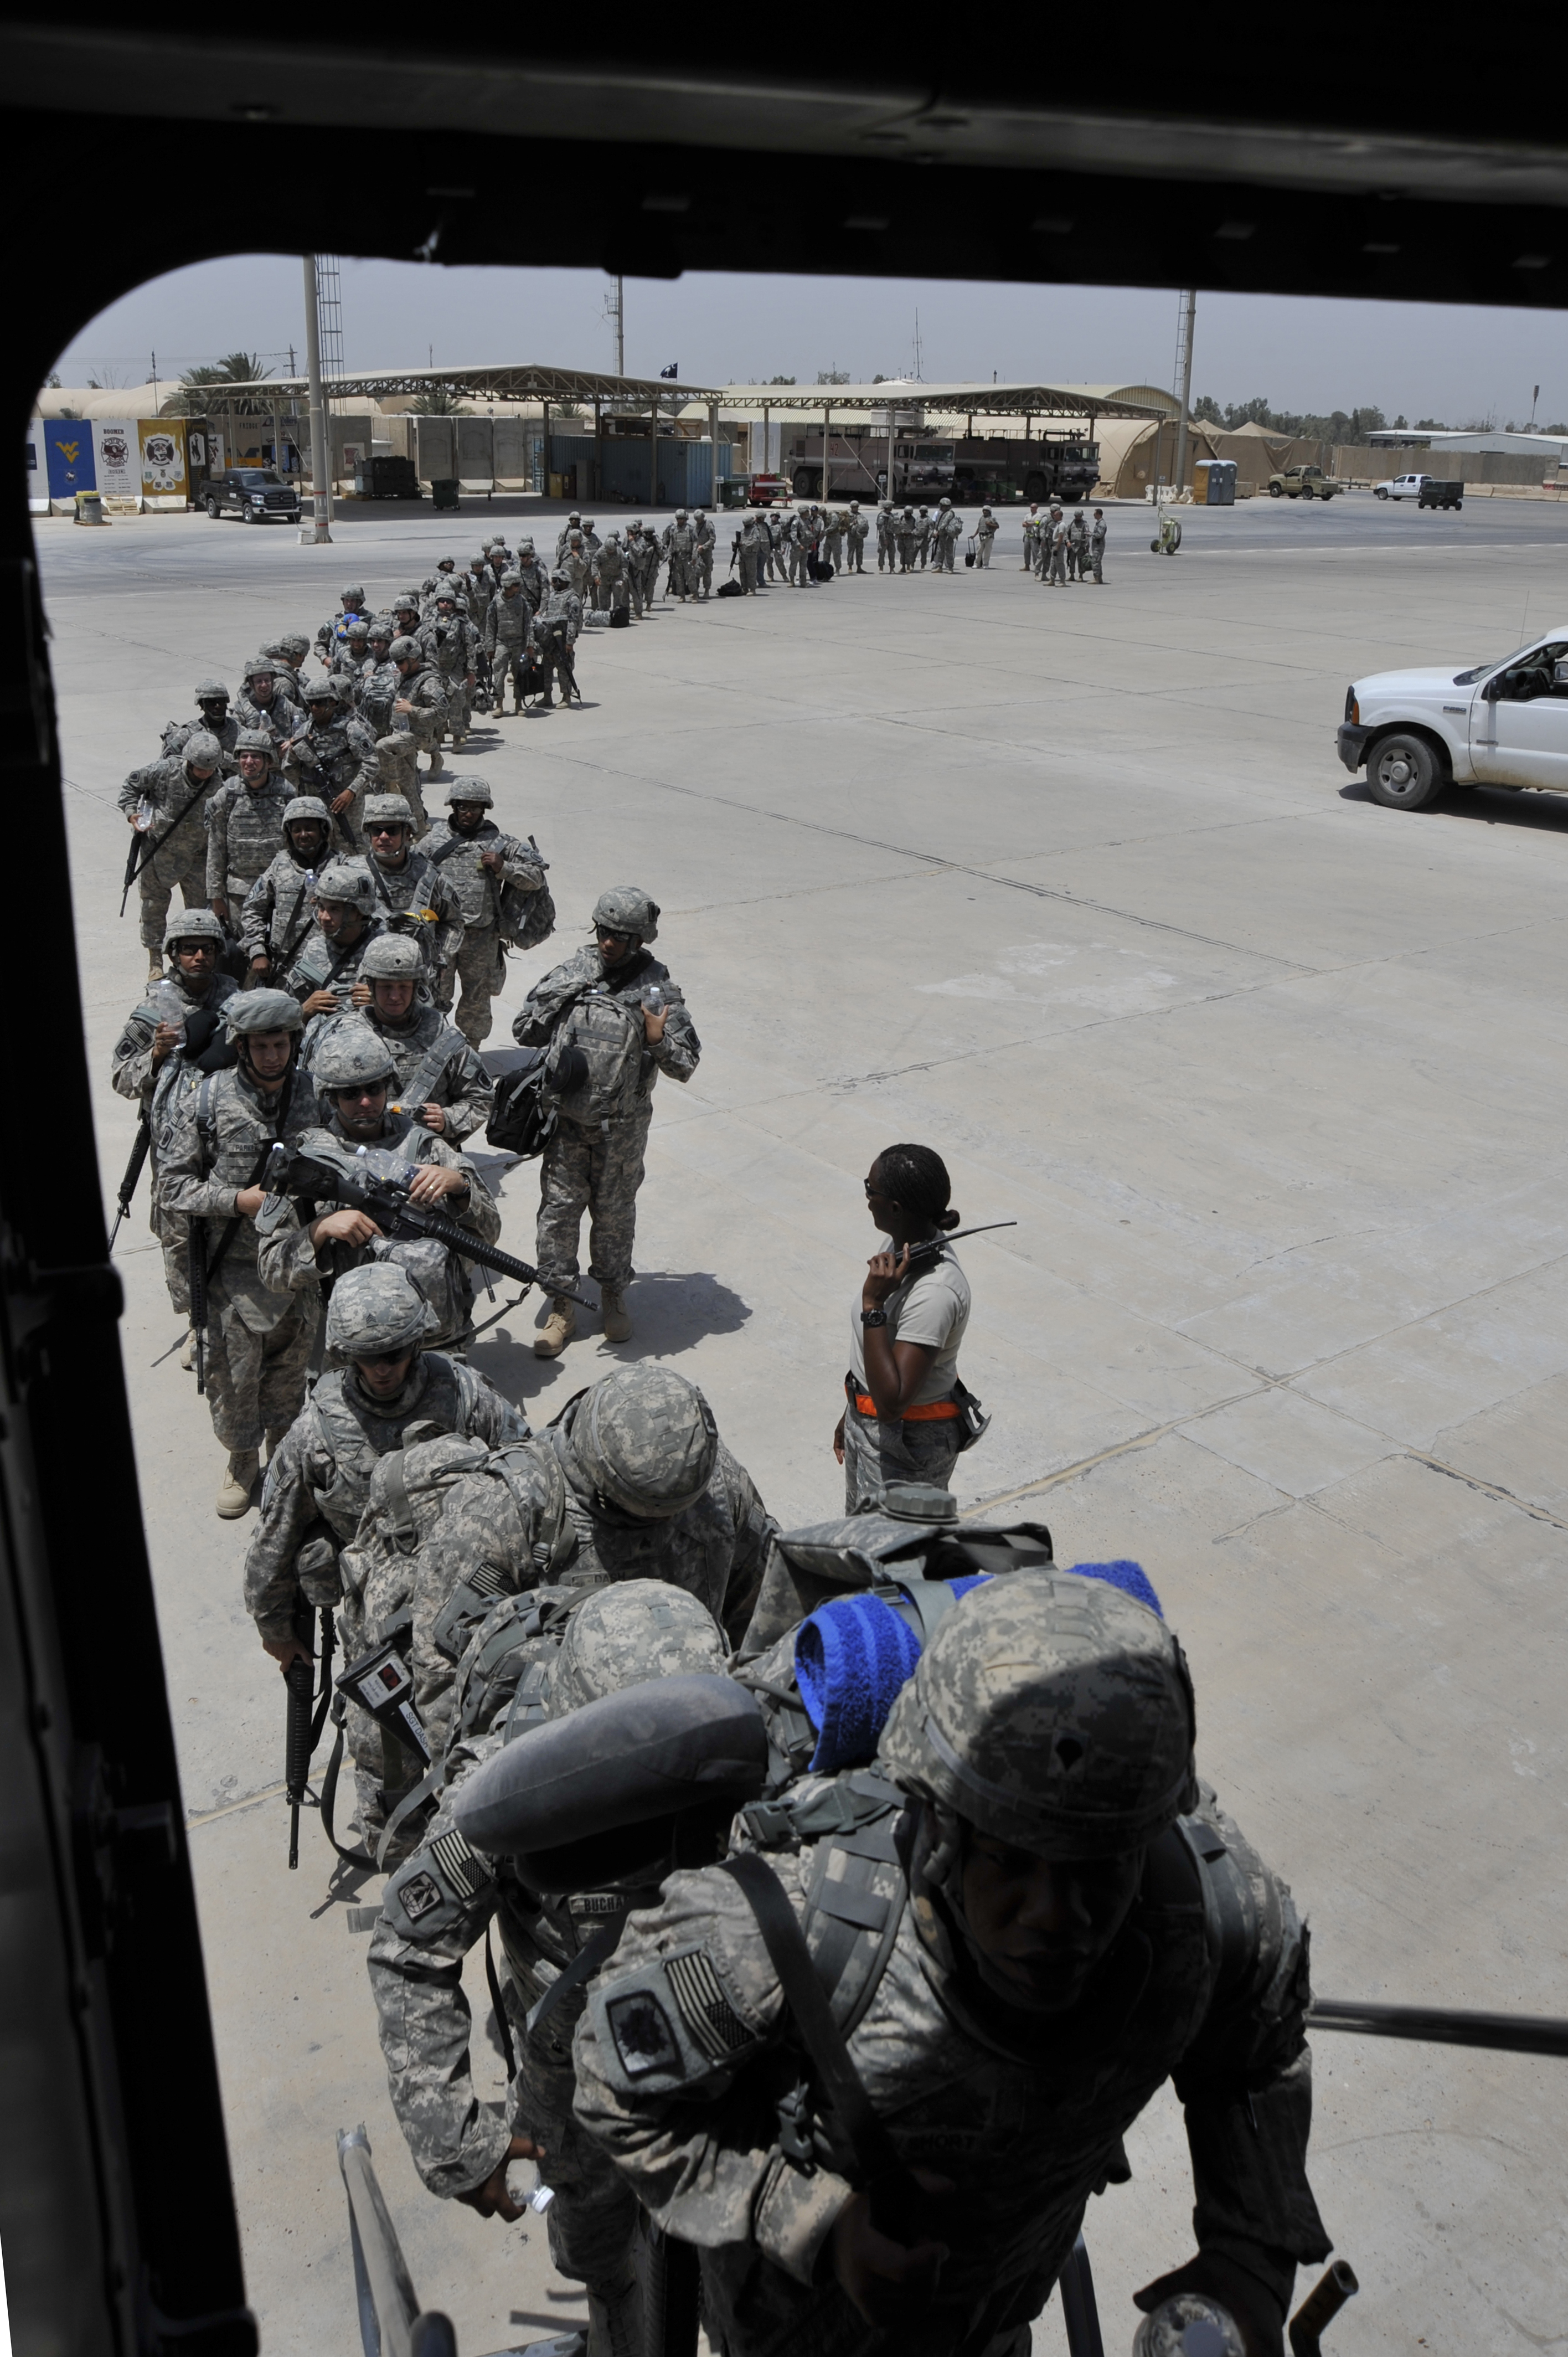 th elrs airmen ensure iers get home as drawdown continues 447th elrs airmen ensure iers get home as drawdown continues